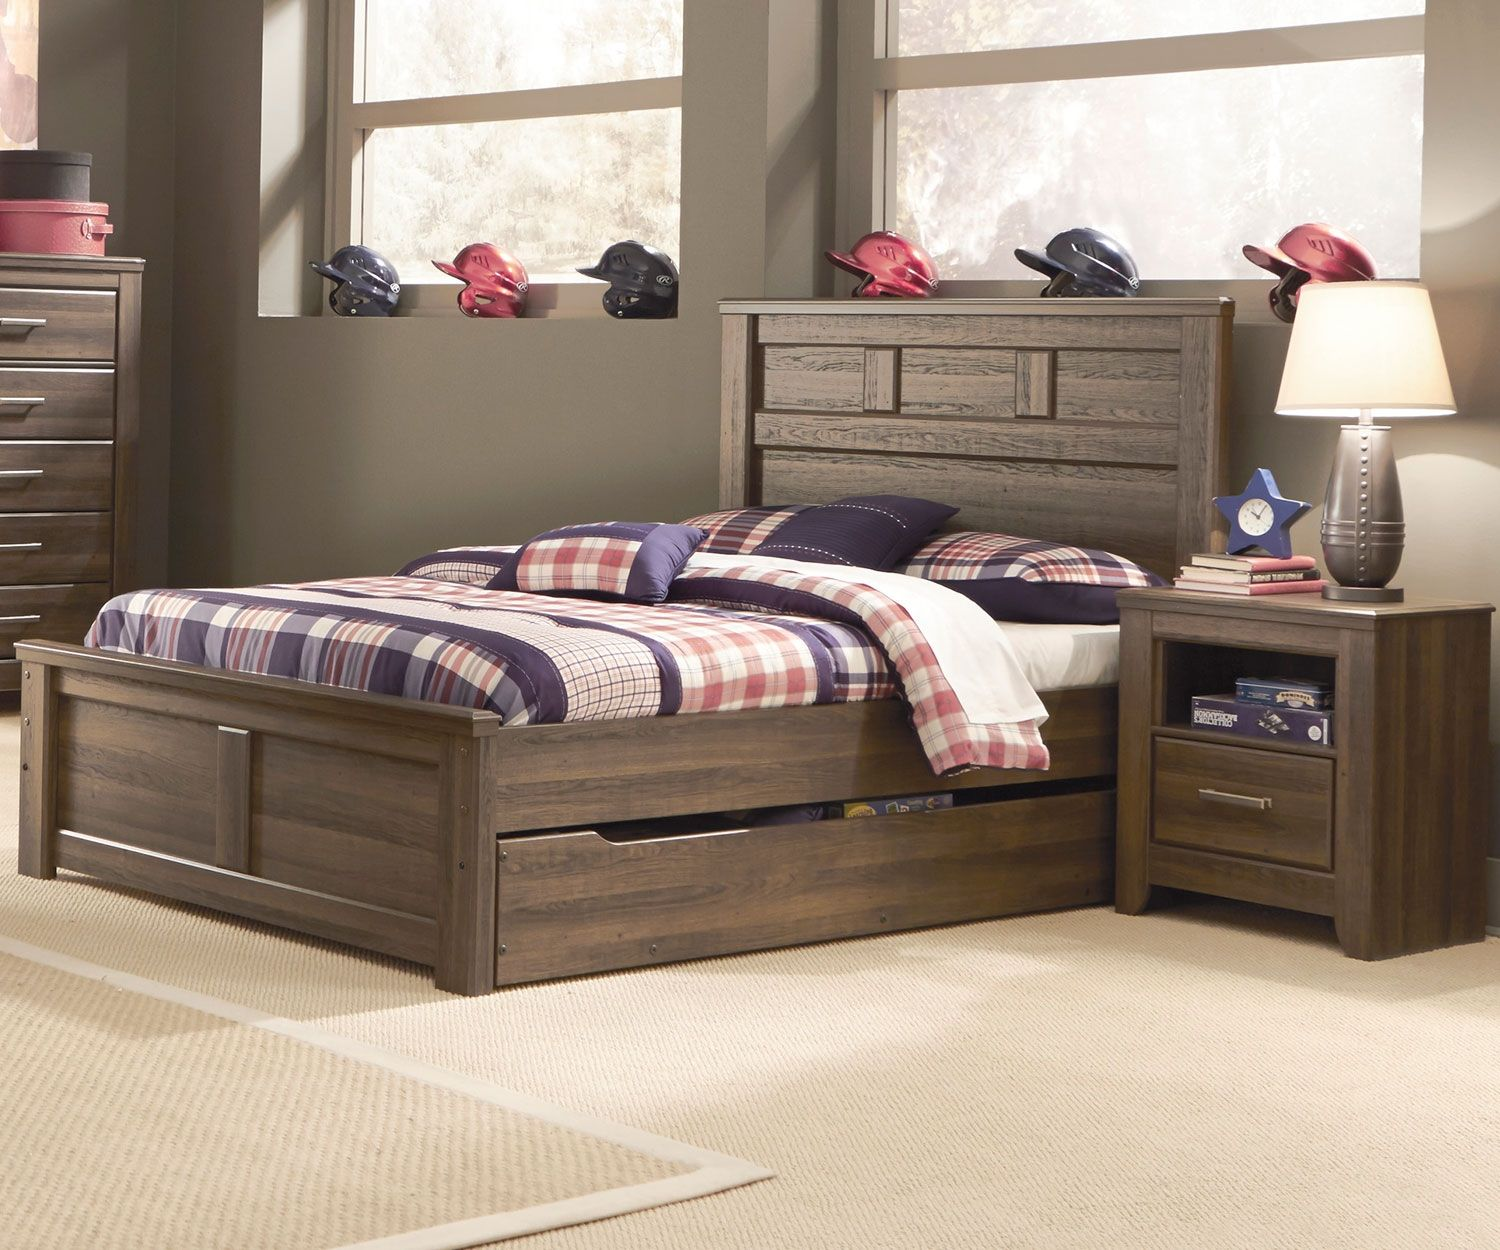 Trundle beds for kids - Buy Ashley Juararo Full Size Trundle Bed At Kids Furniture Warehouse The Juararo Trundle Bed Can Be Used For Sleep Or Storage The Perfect Full Size Bed